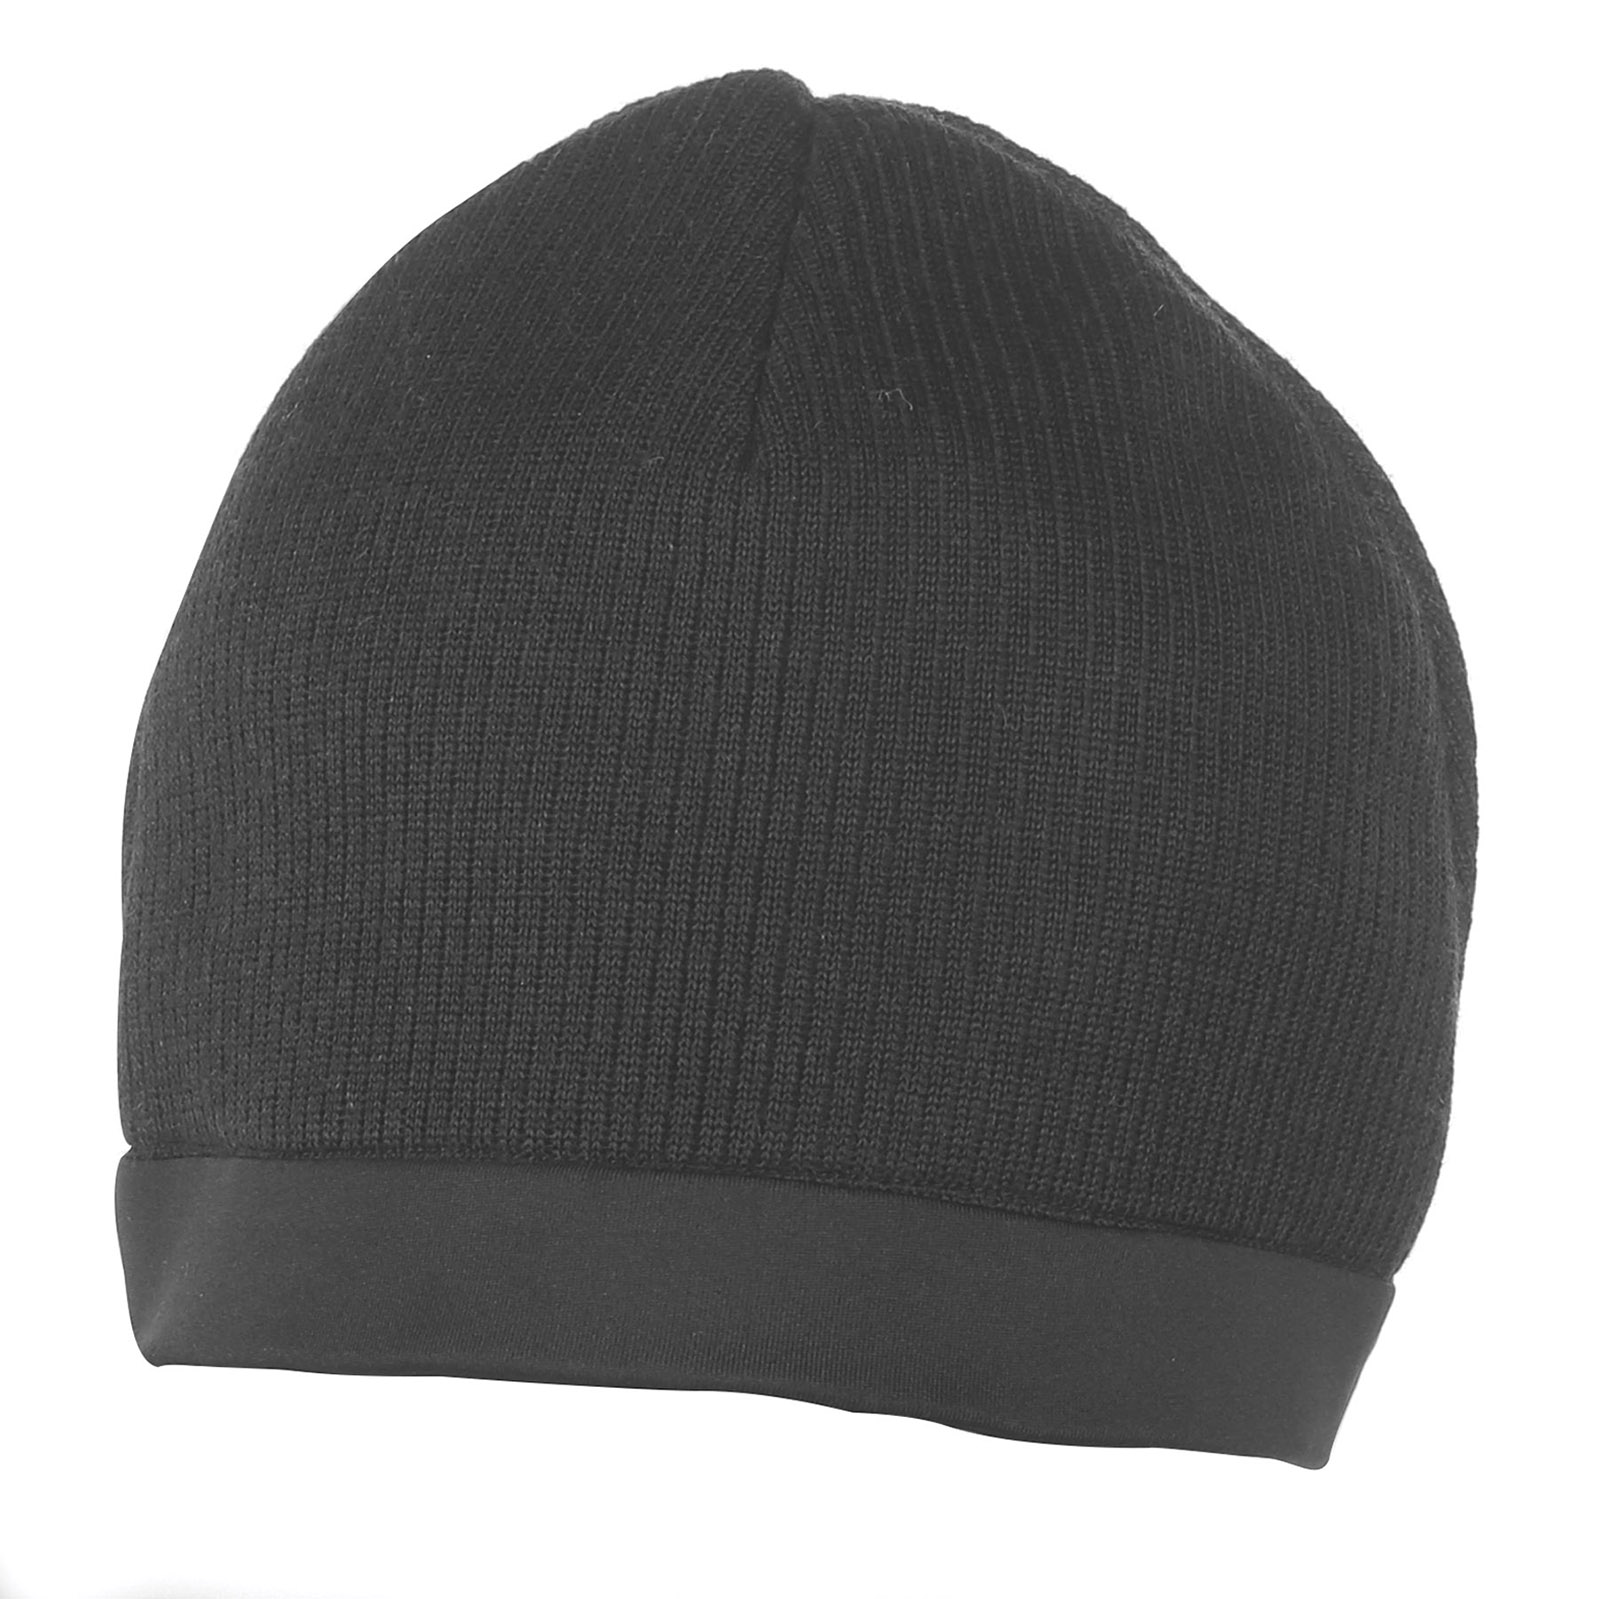 Cobmex Fleece Lined Knit Cap